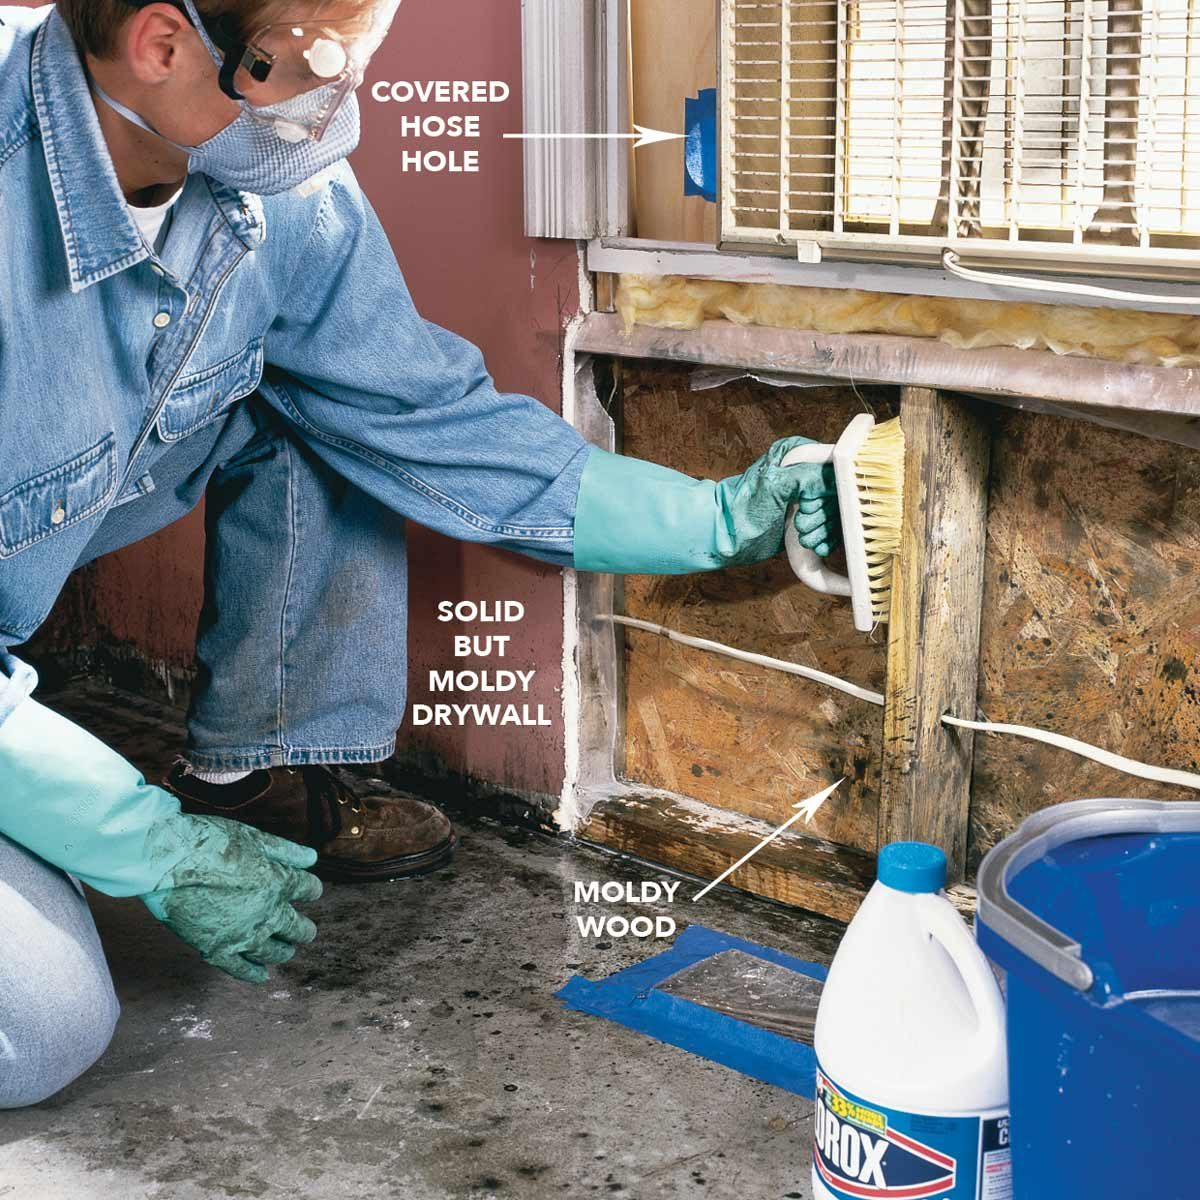 Scrub moldy surfaces with mold cleaner